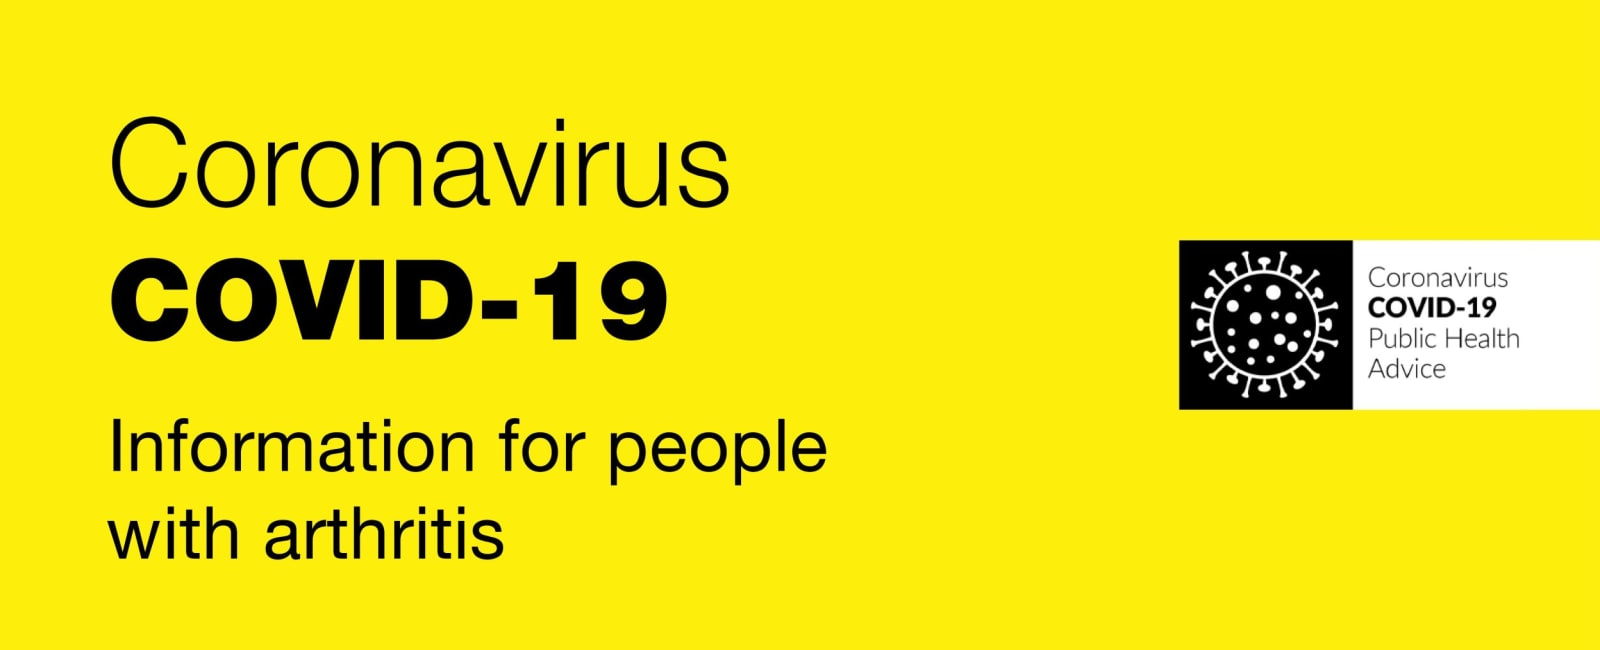 Covid-19 information for people with arthritis banner